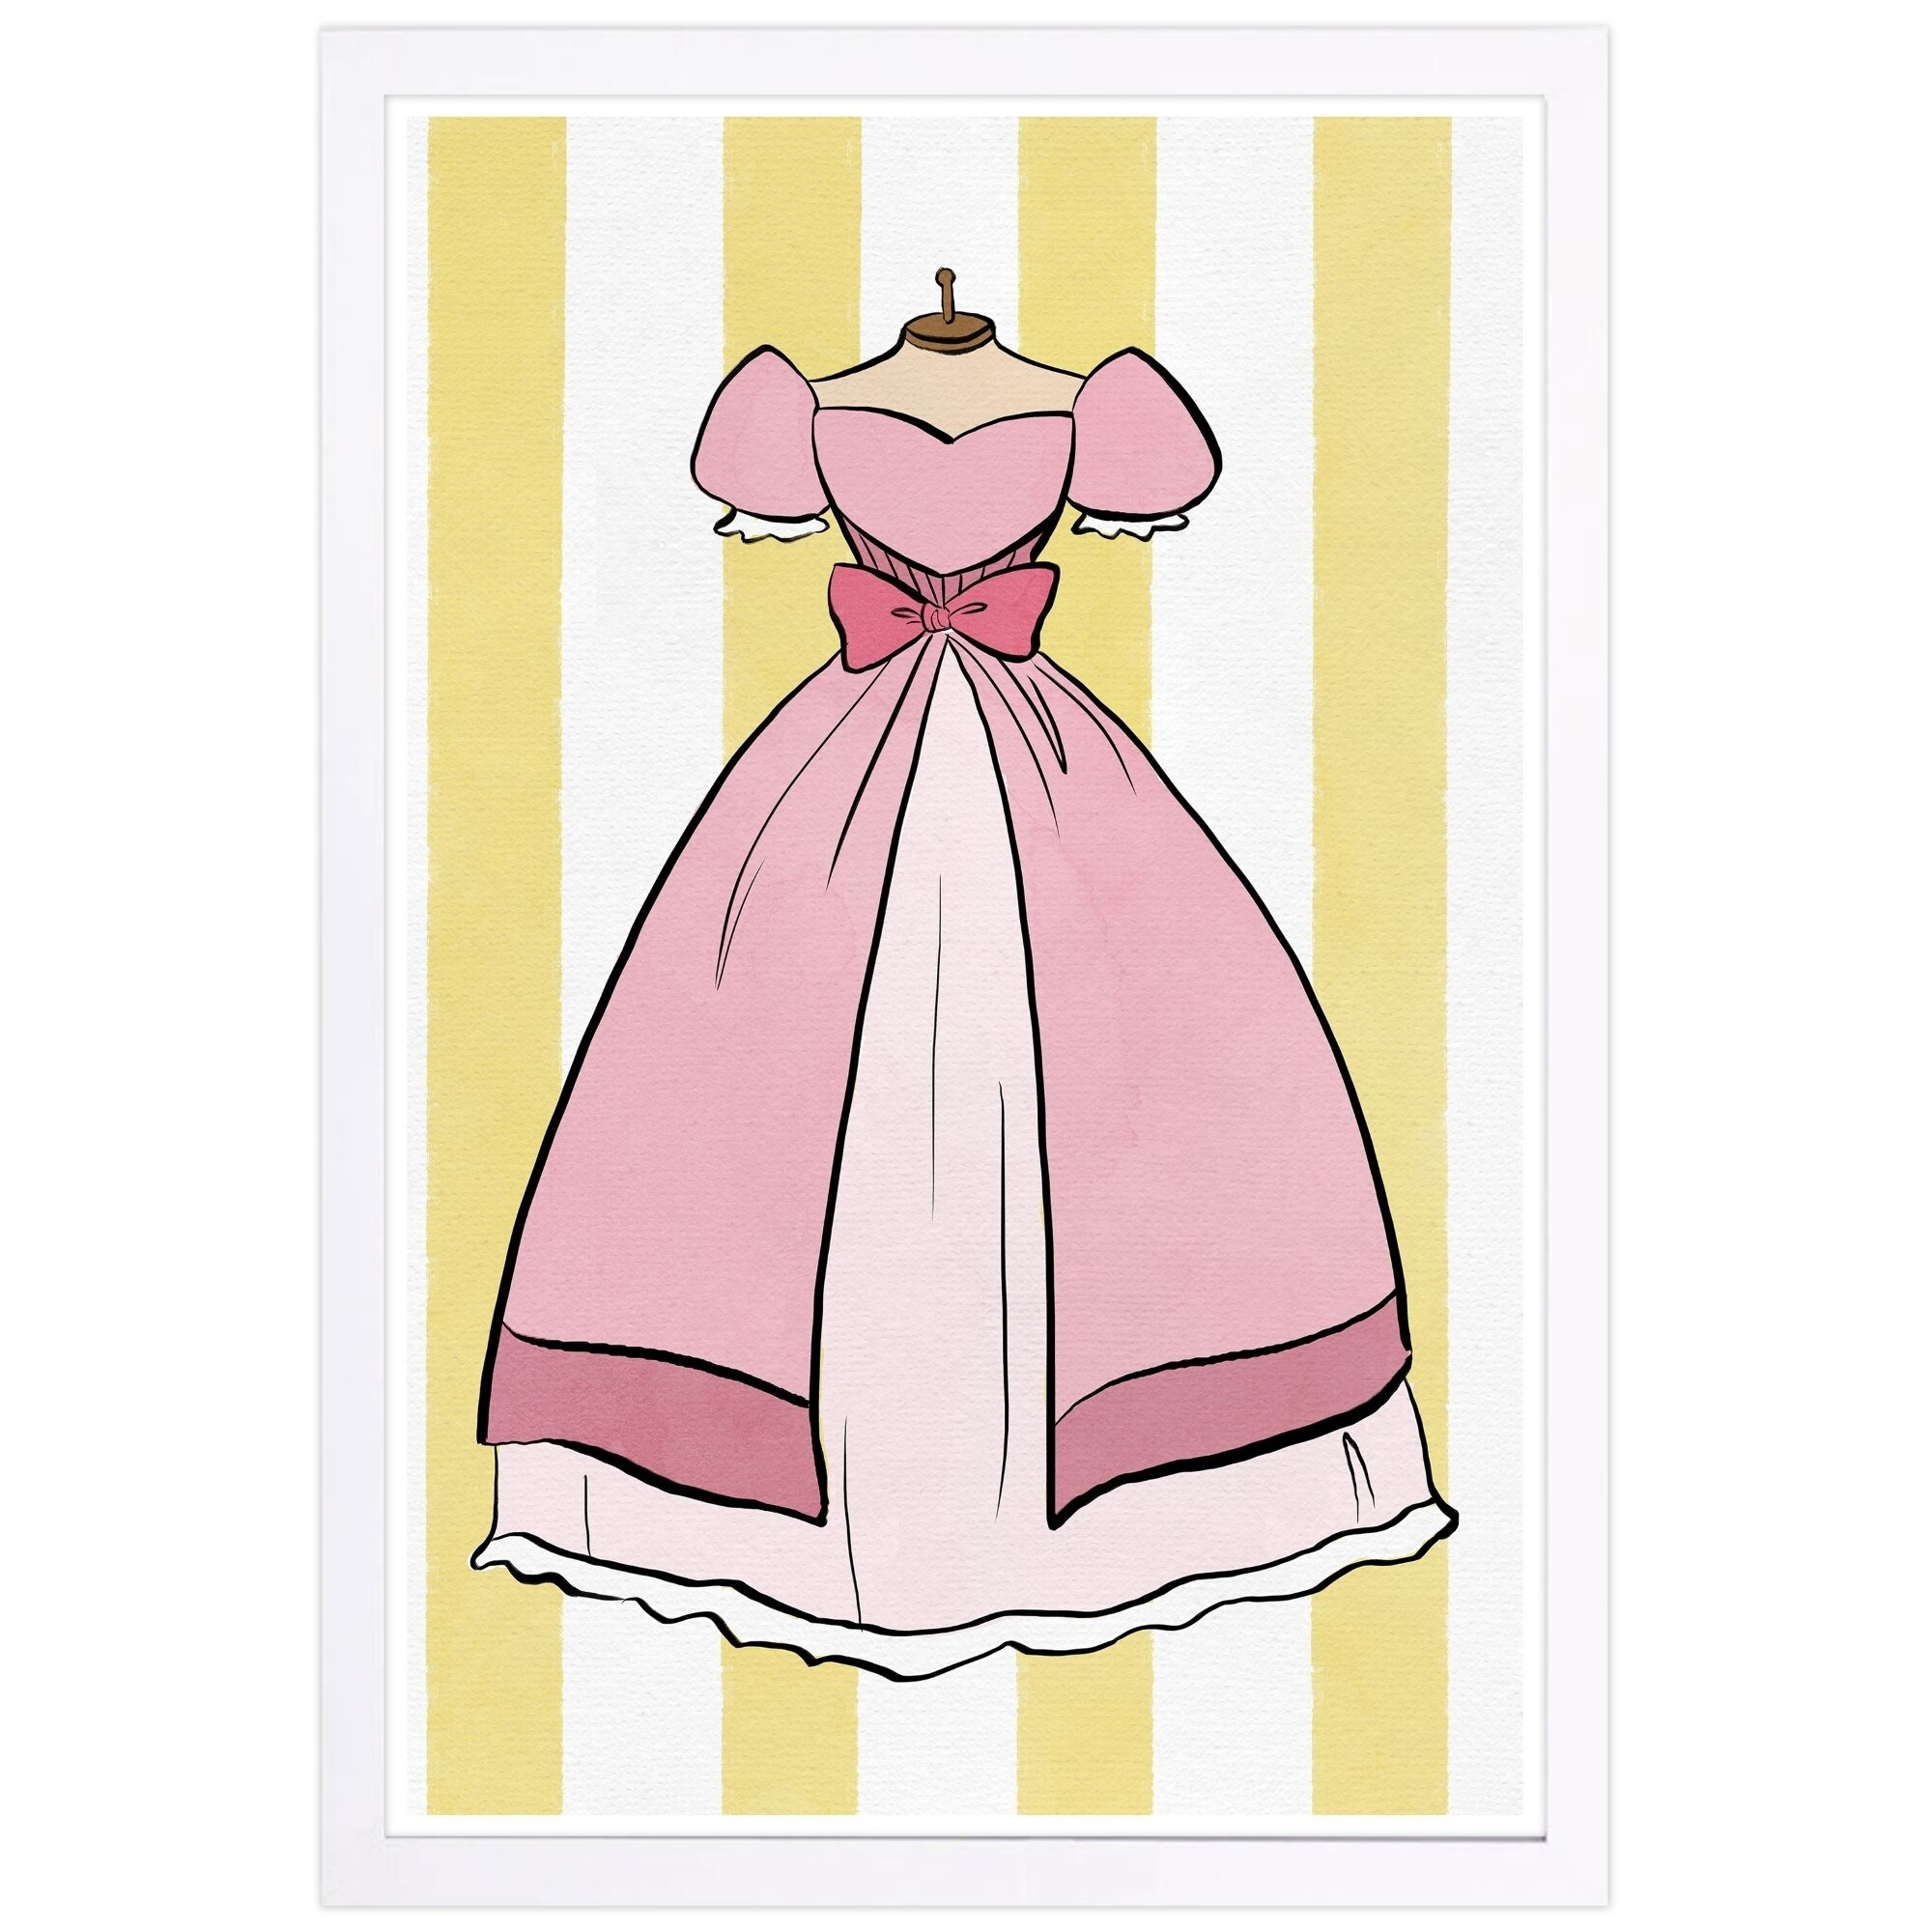 Shop Wynwood Studio Princess Dress Fantasy And Sci Fi Framed Wall Art Print Pink Yellow 13 X 19 On Sale Overstock 28891888